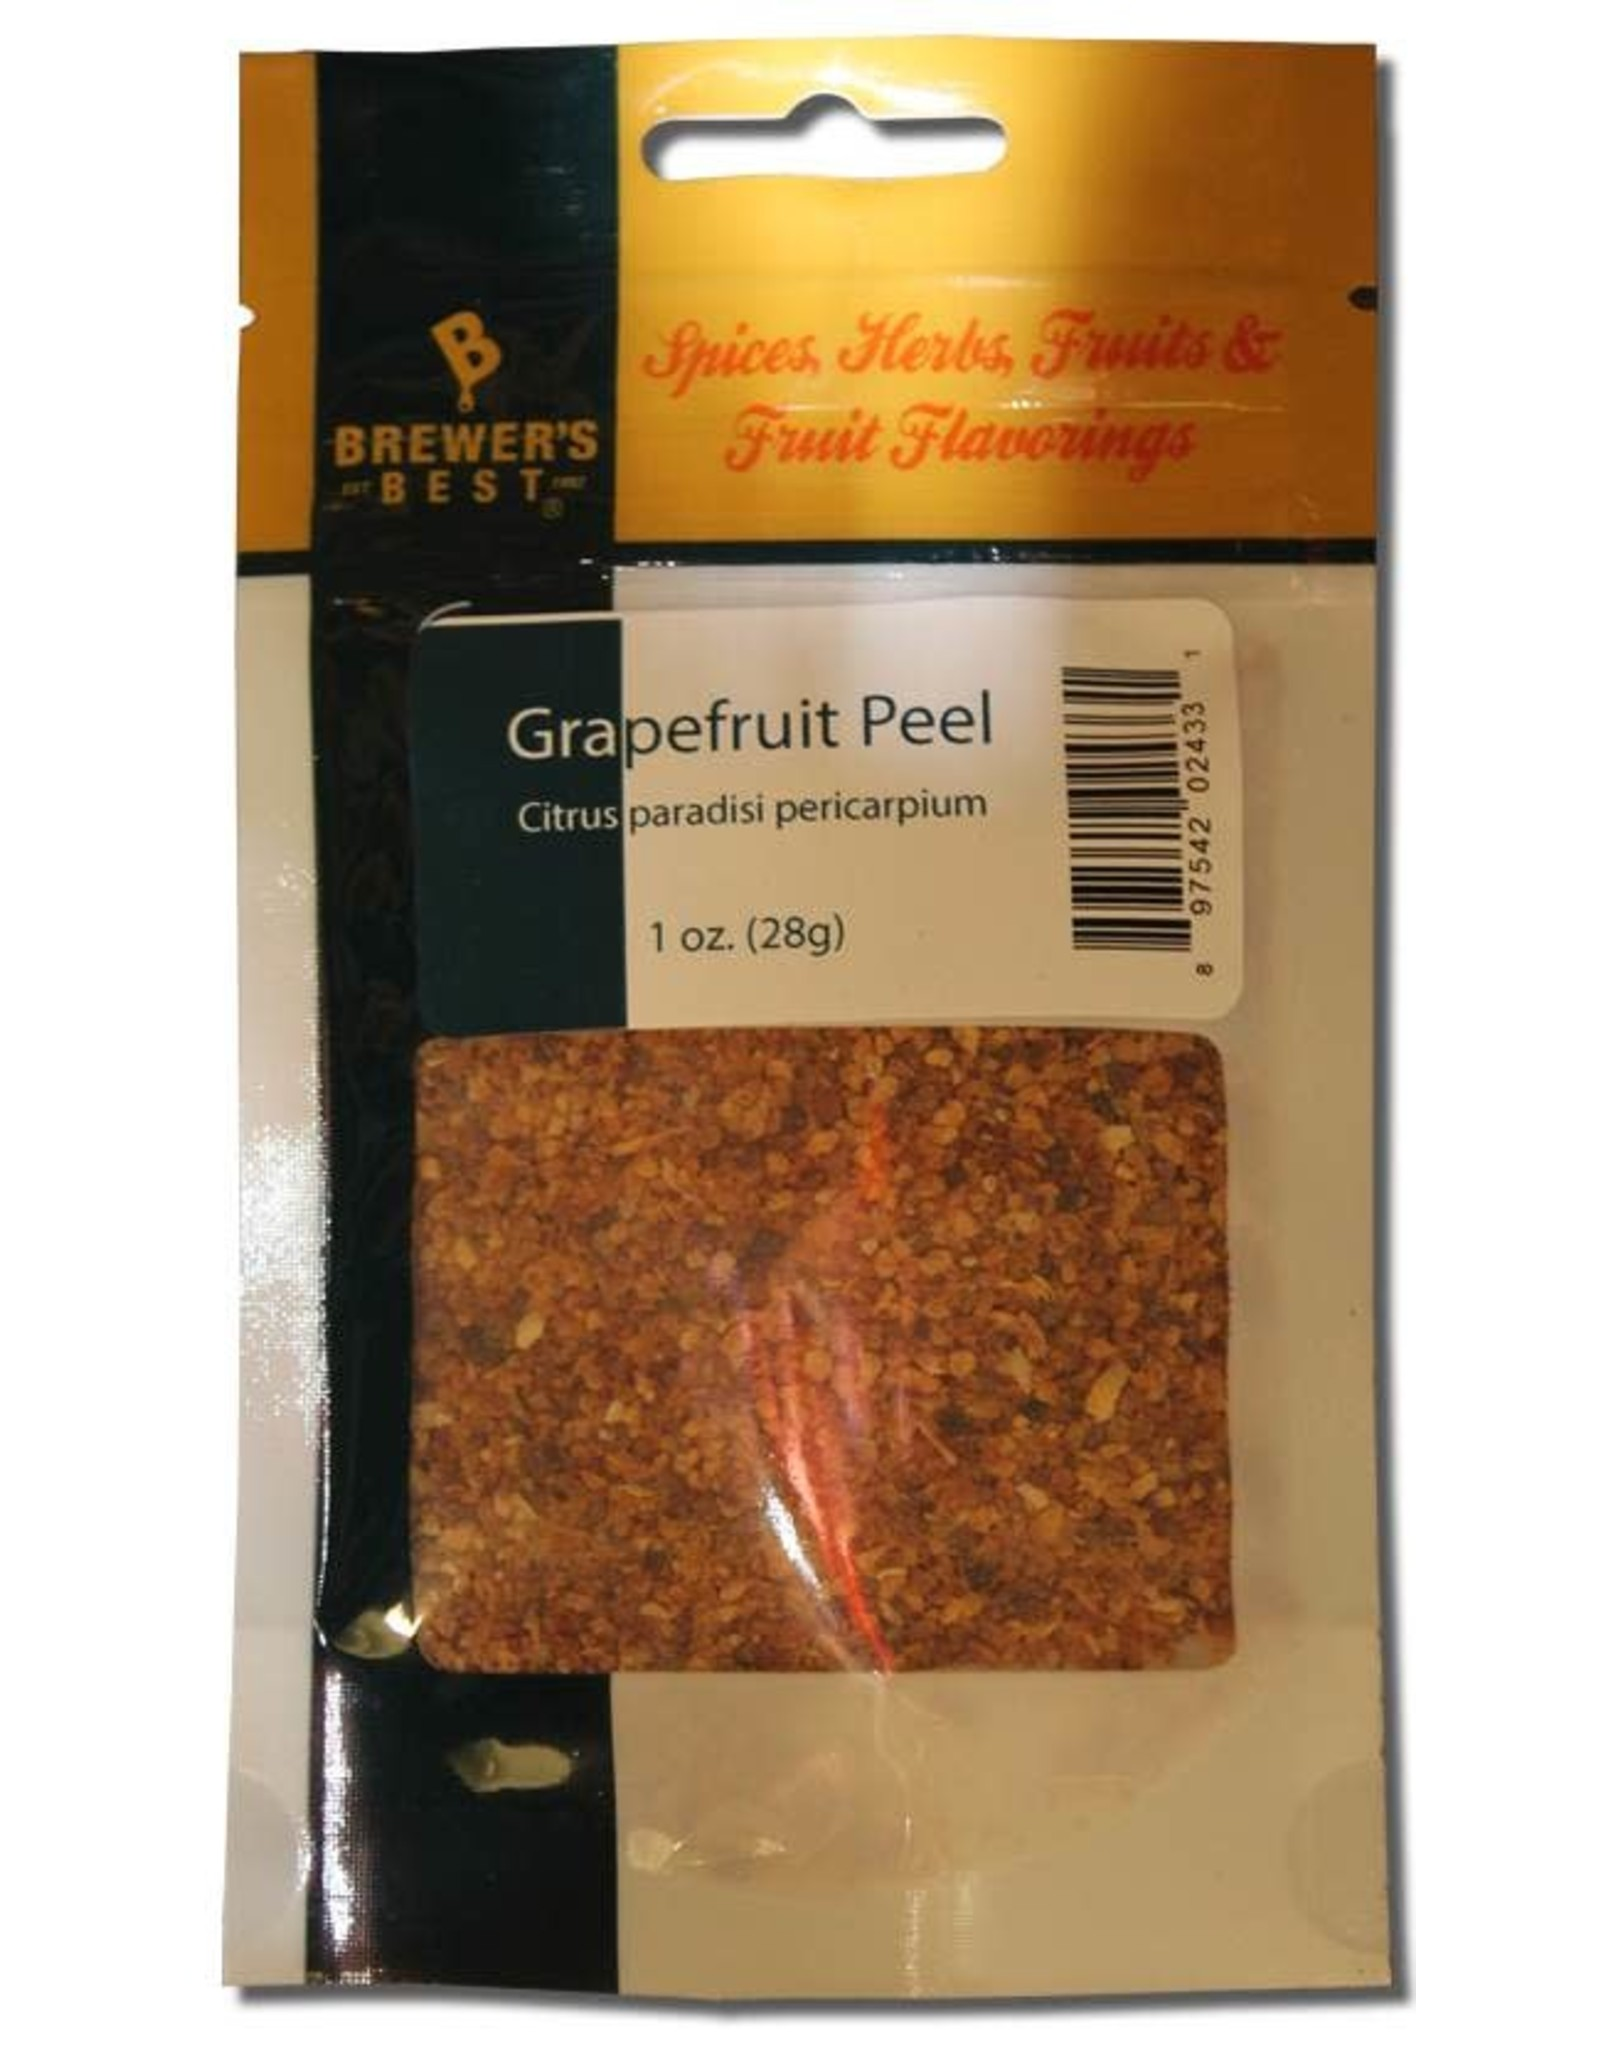 Flavoring - Grapefruit Peel 1 oz